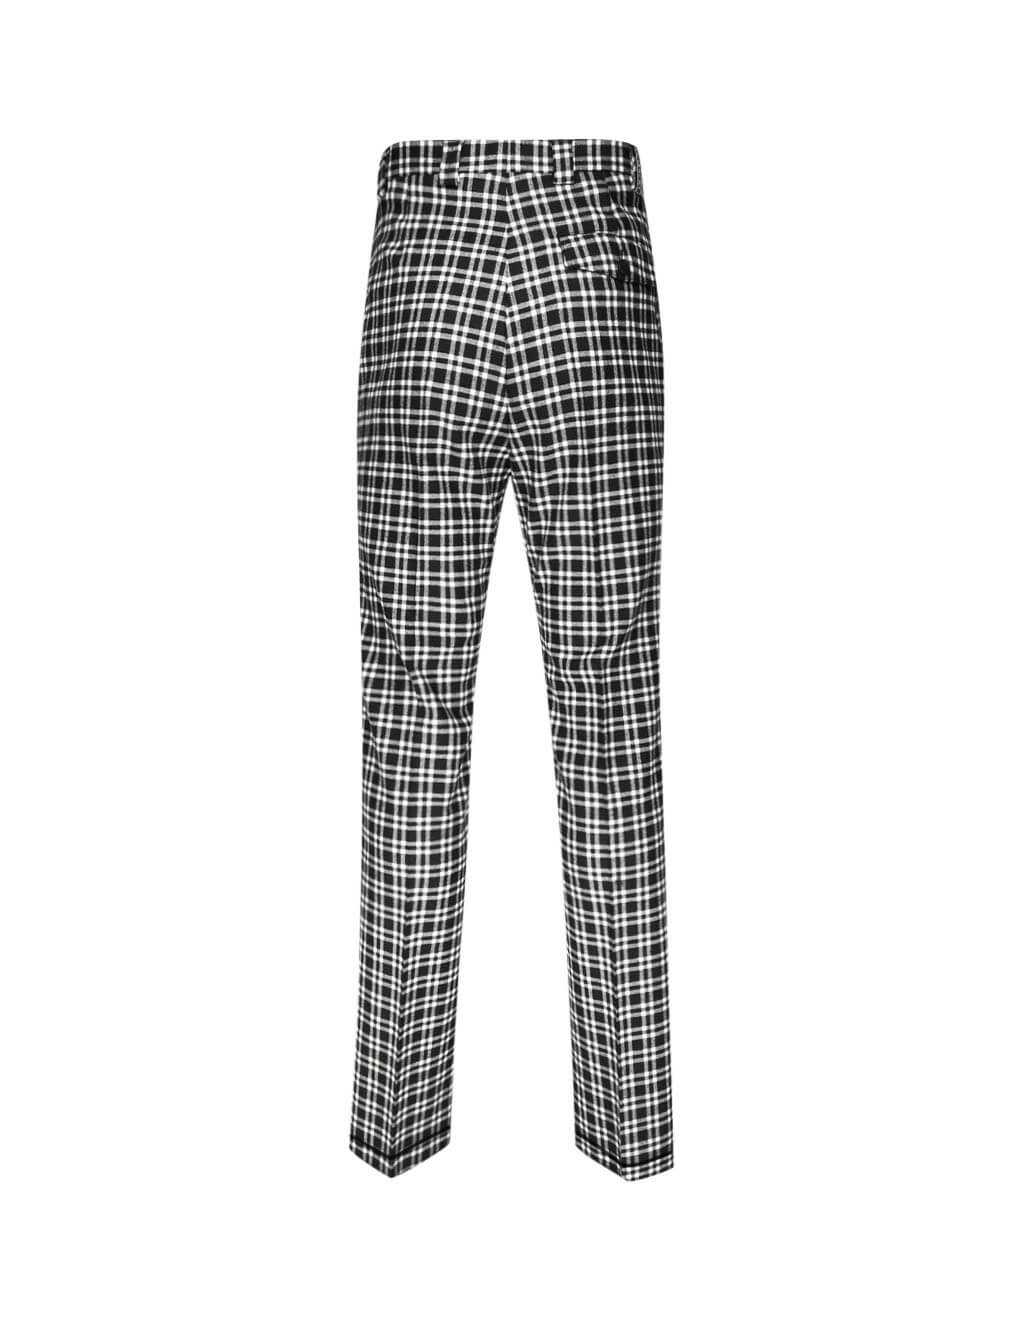 Givenchy Men's Giulio Fashion Black Check Trousers BM50AY123G004